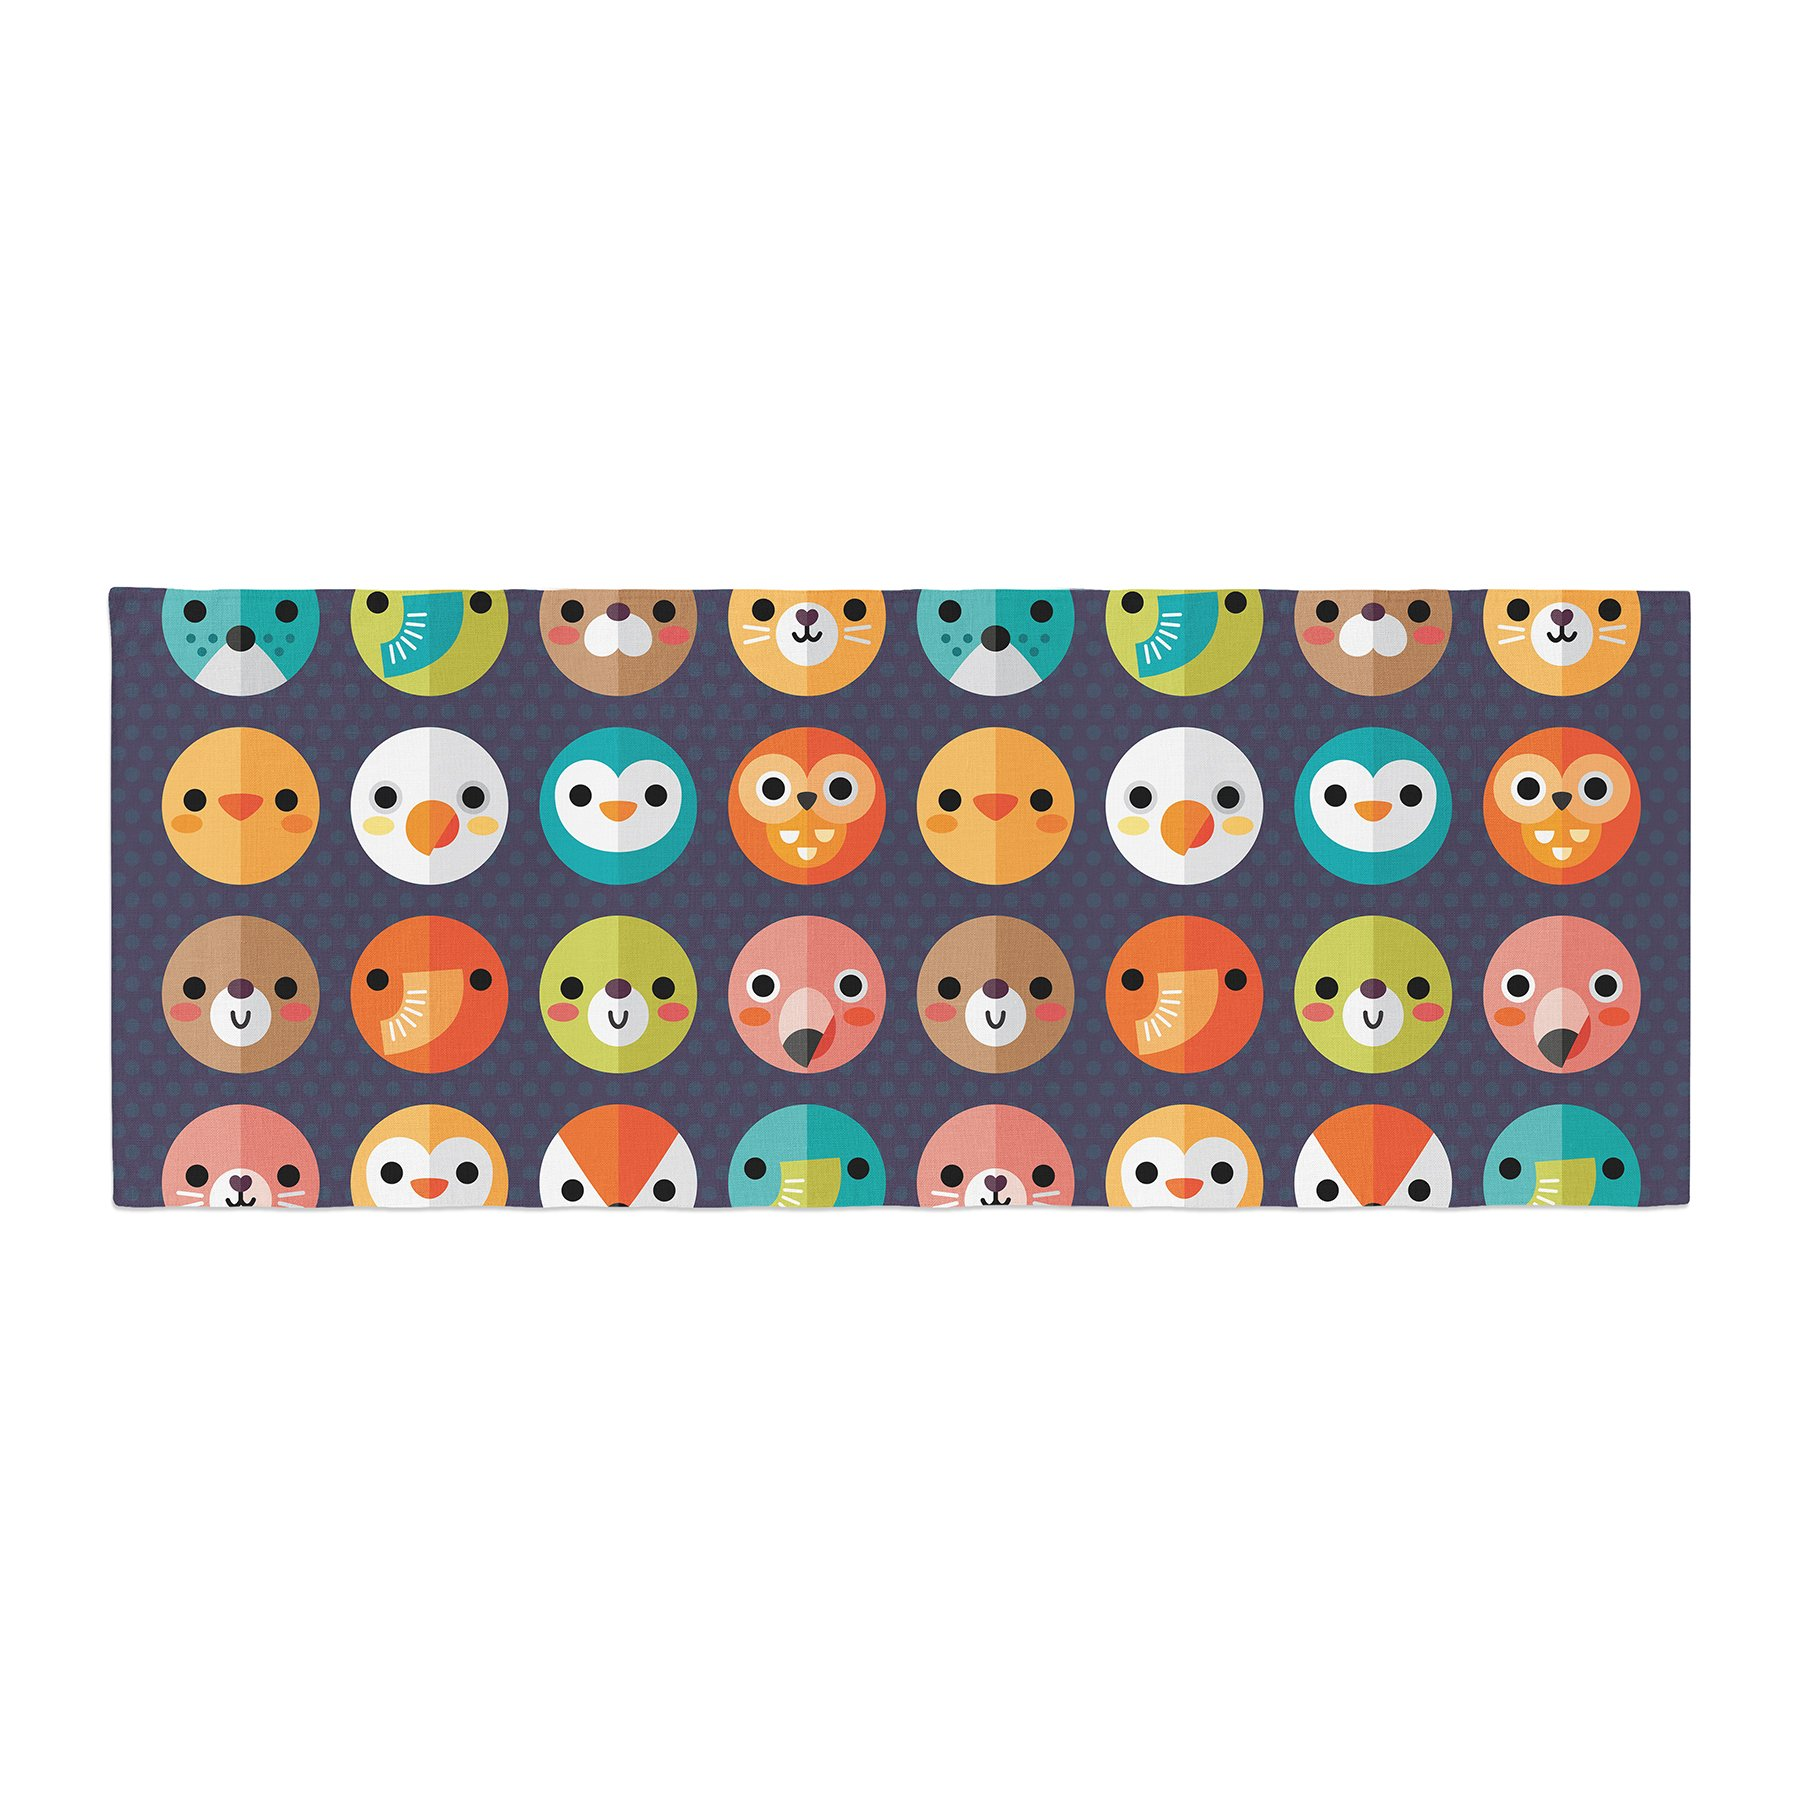 Kess InHouse Daisy Beatrice Smiley Faces Repeat Animal Pattern Bed Runner, 34'' x 86''